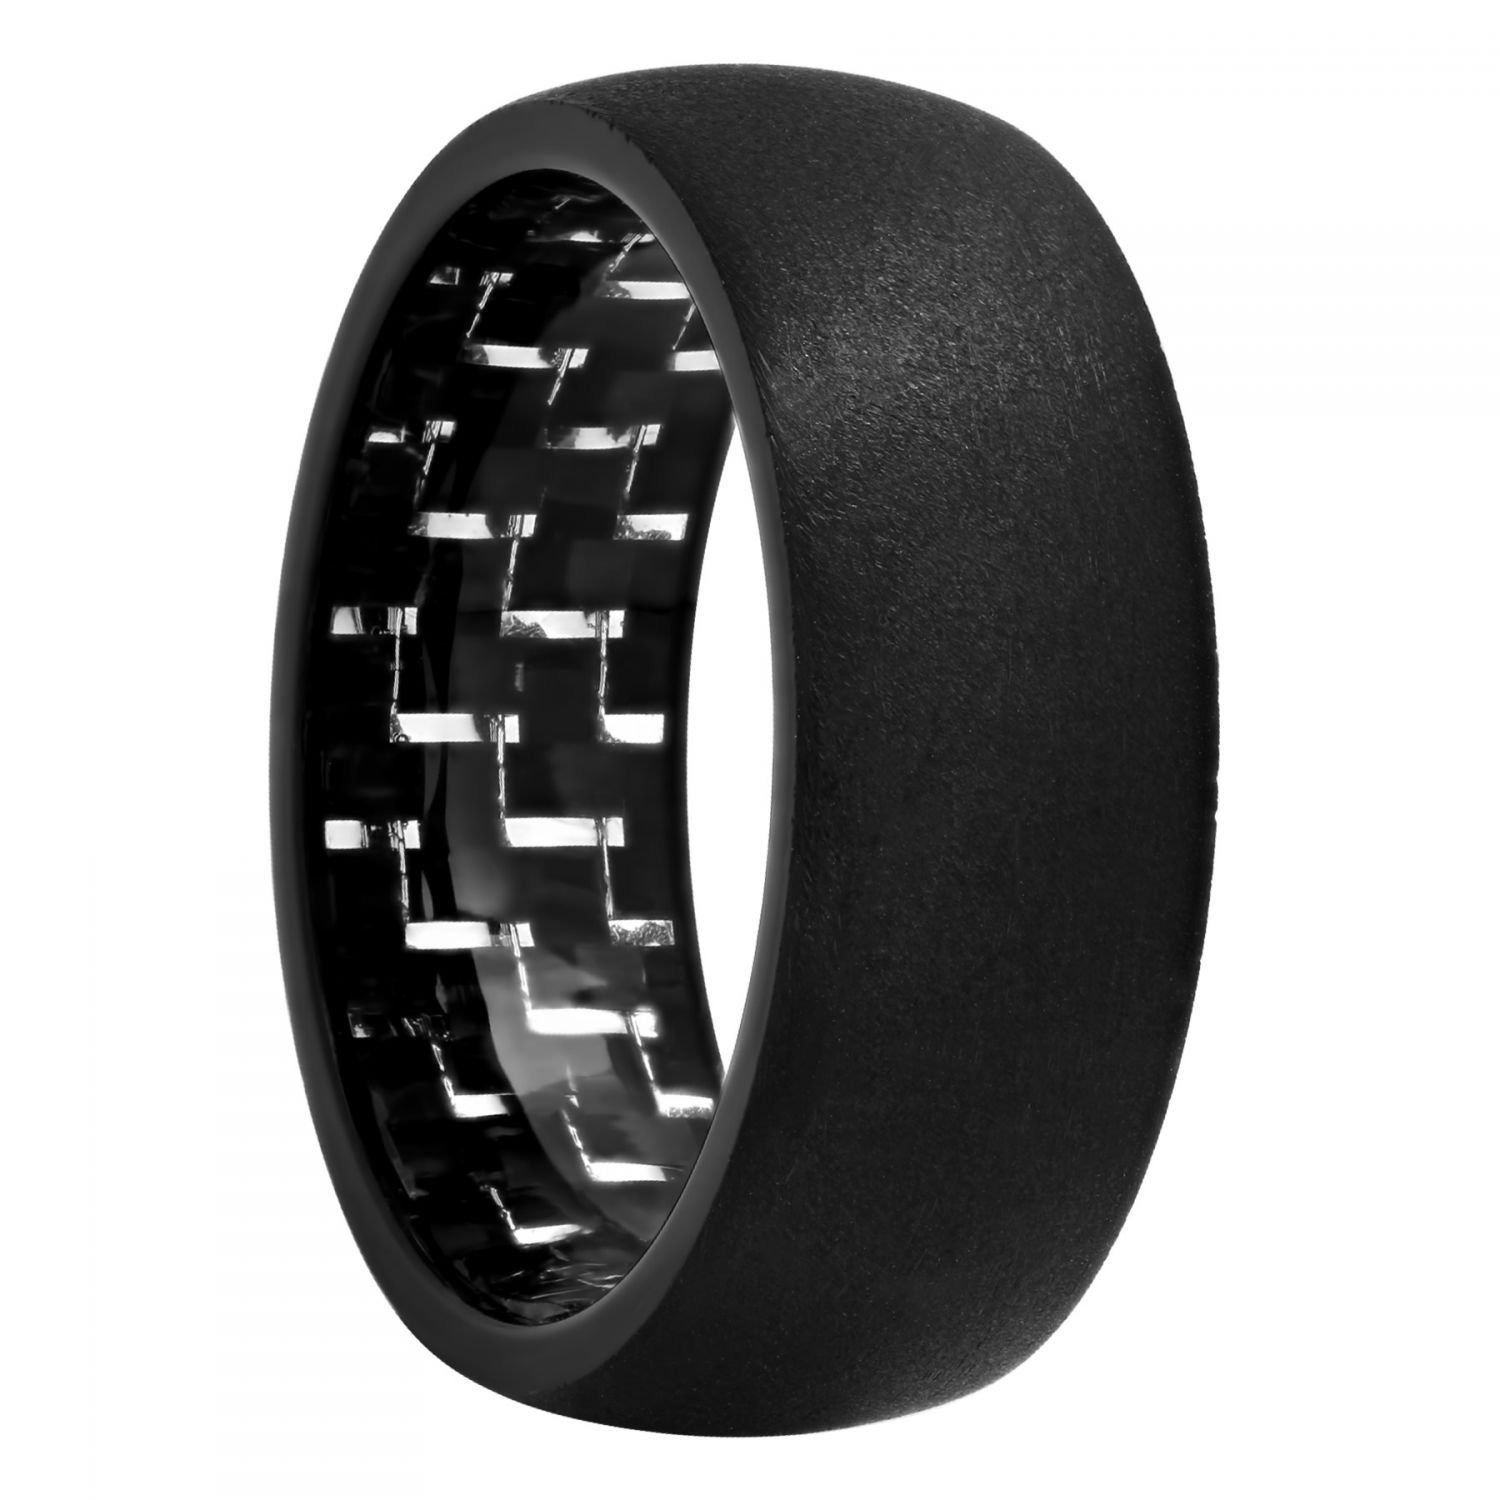 Tantalum Matte Black Carbon Fiber Inside Band, 8mm